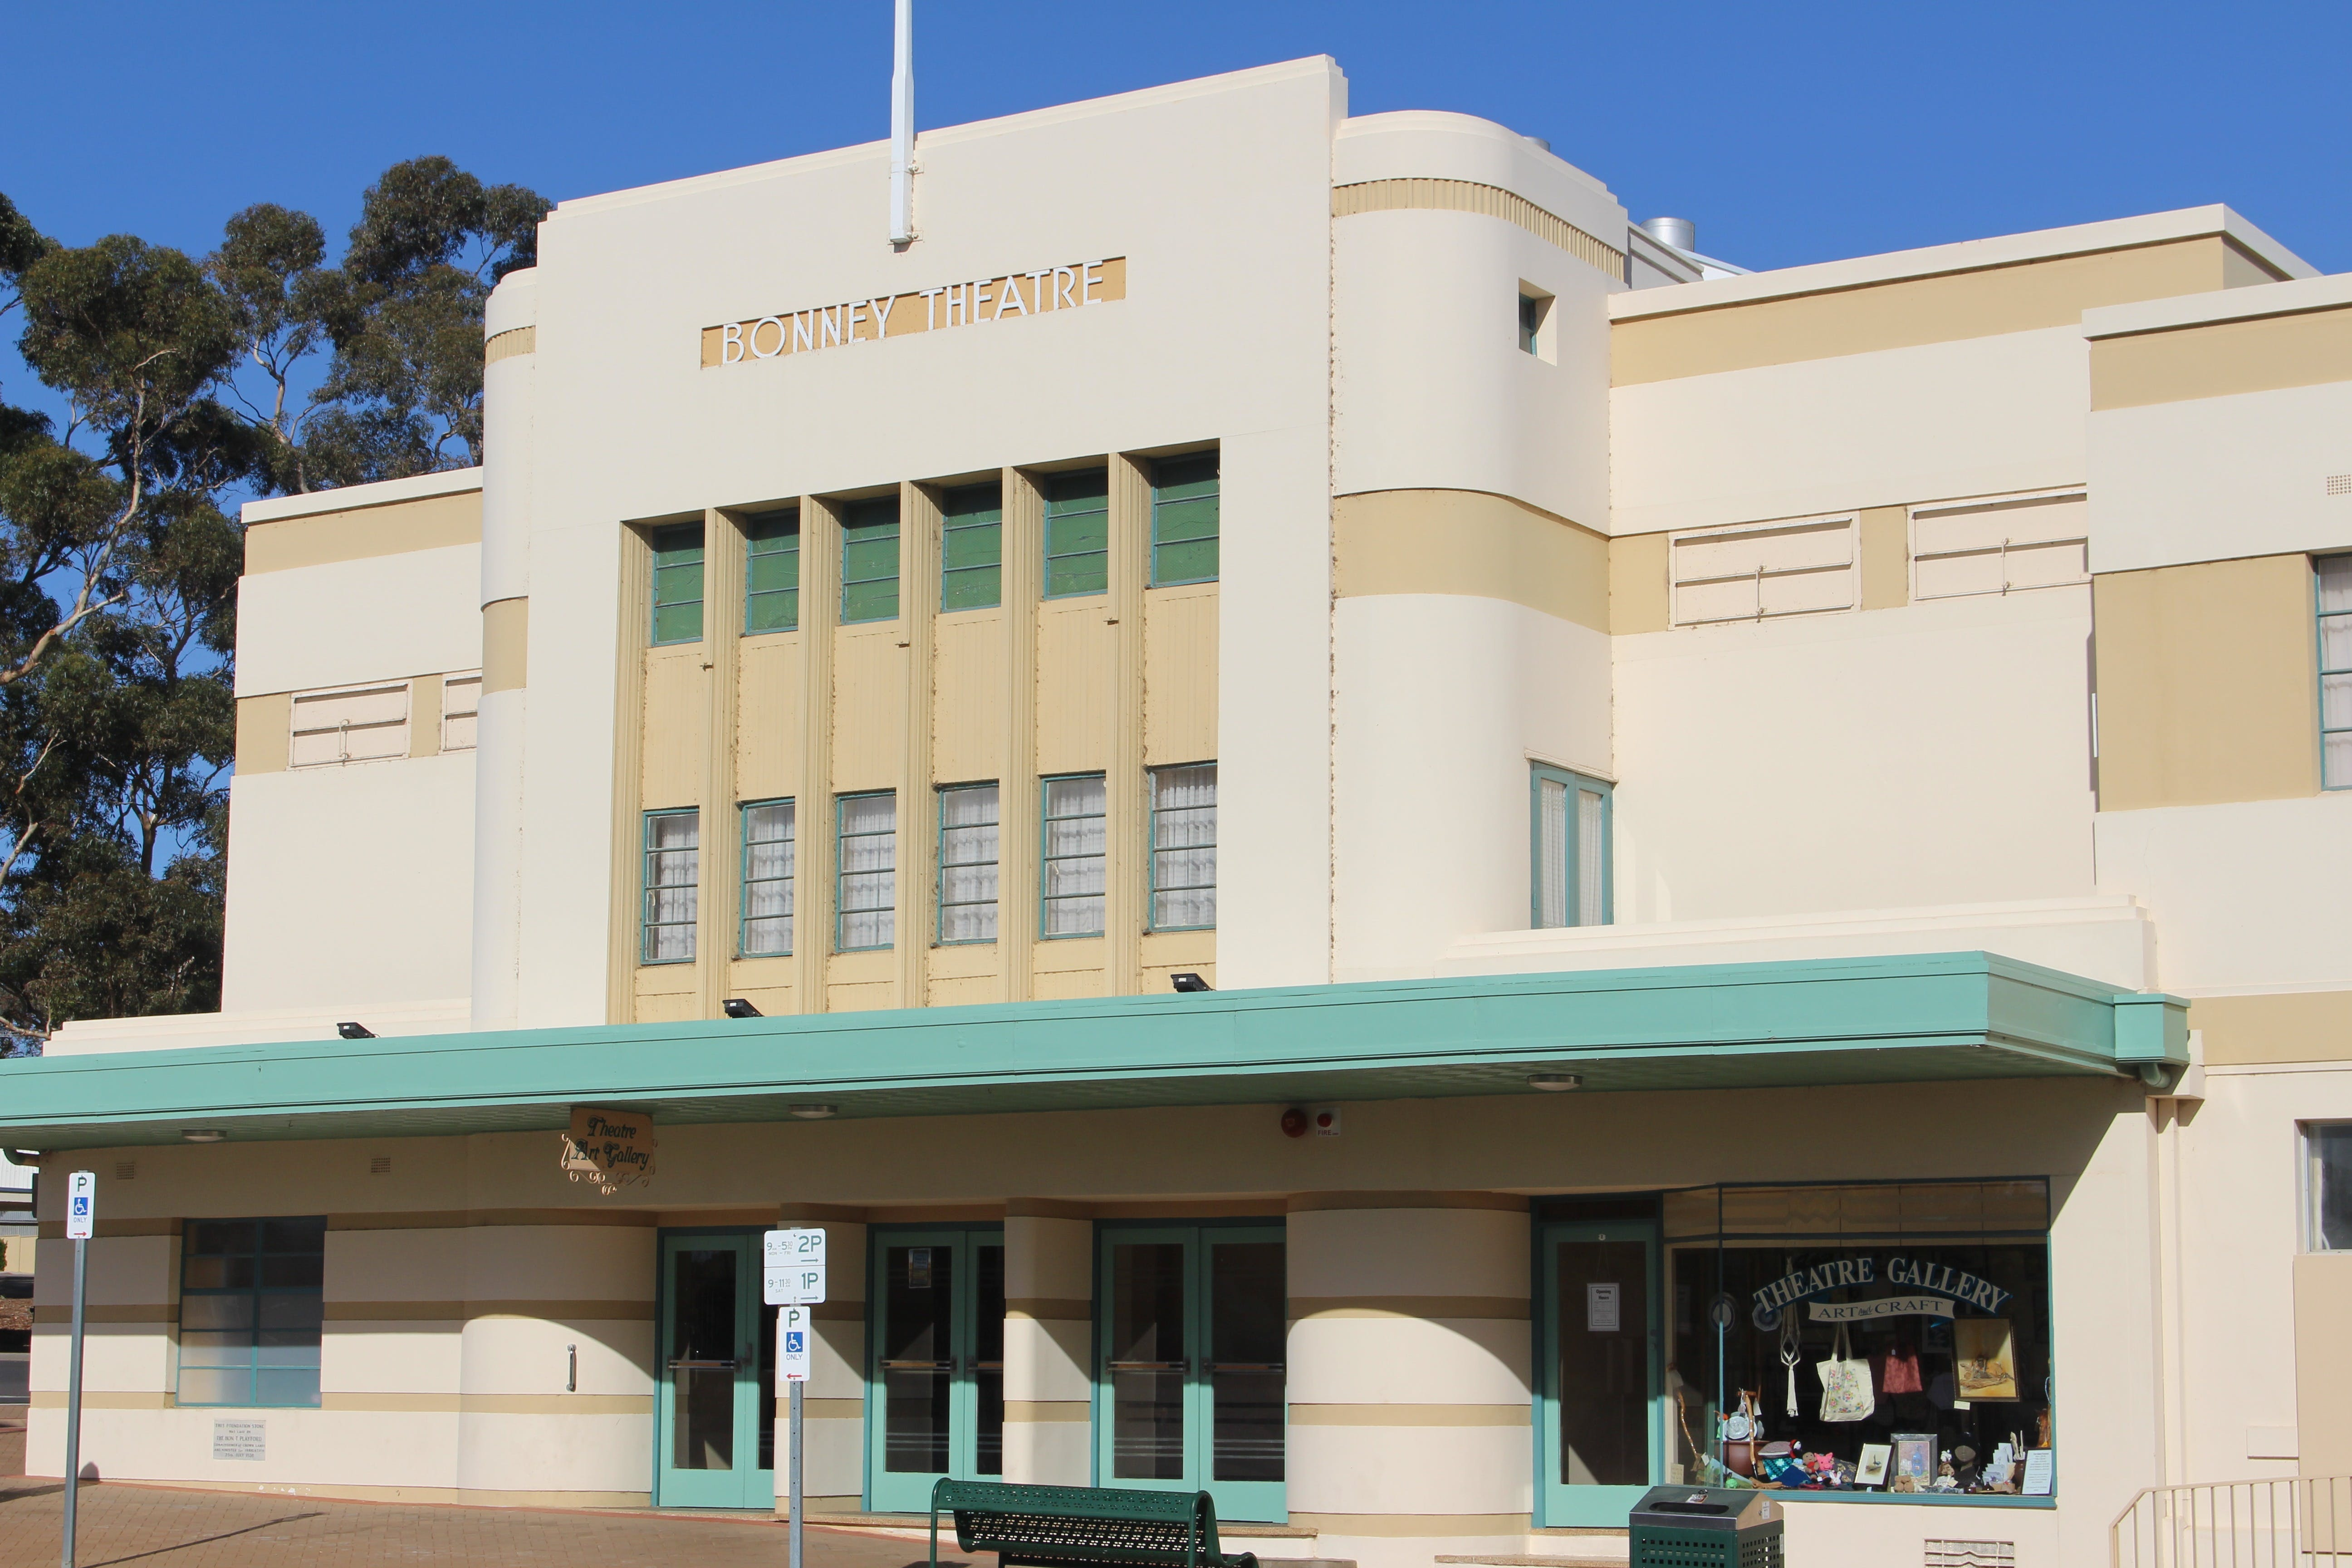 Bonney Theatre - Accommodation Sunshine Coast